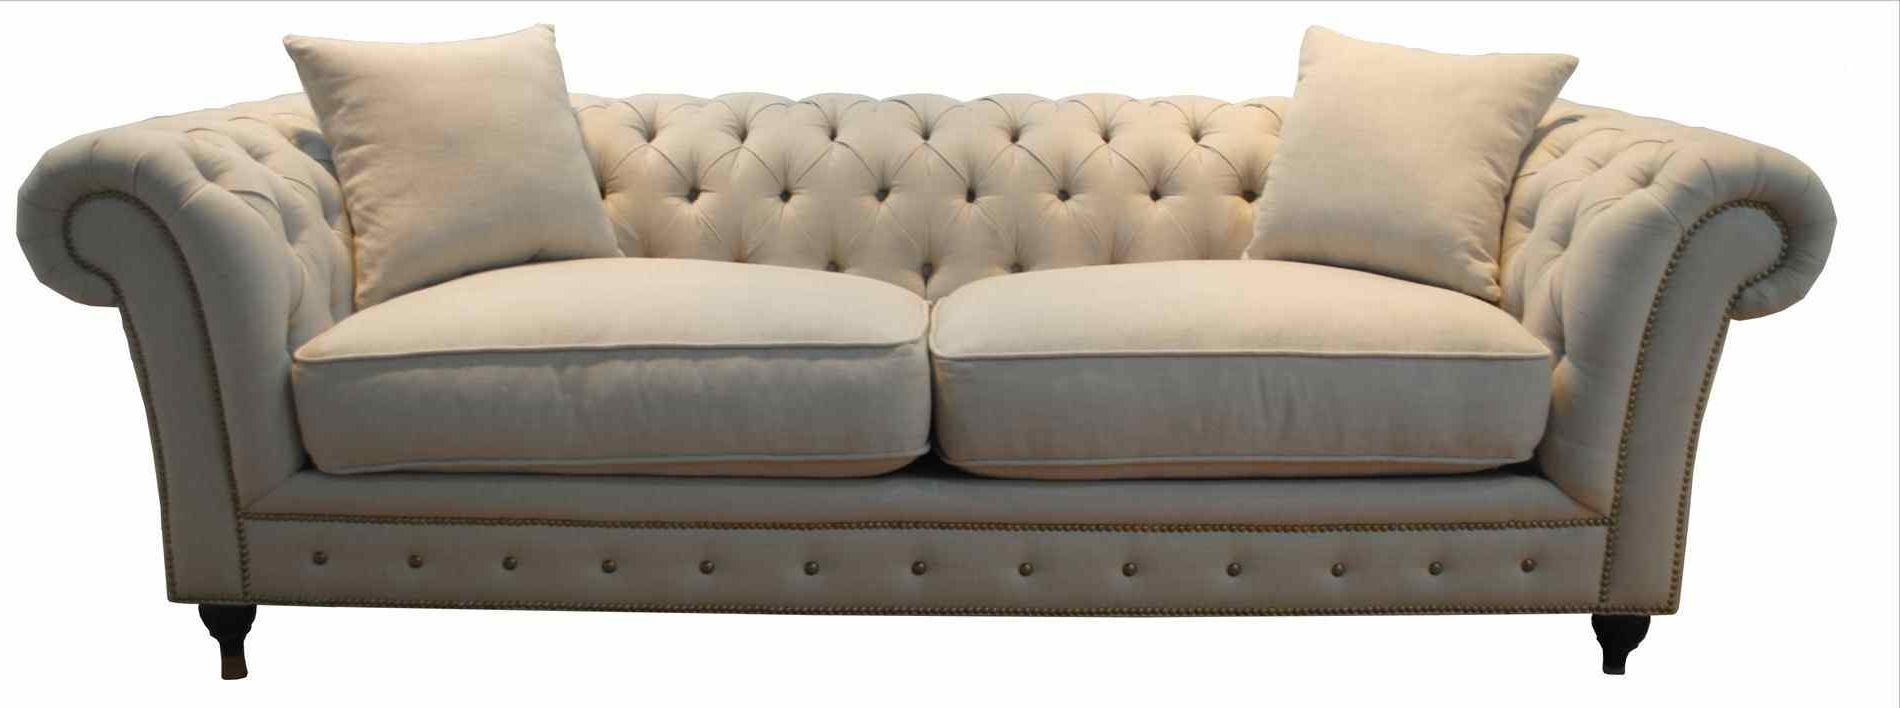 Sofa : Room French Sofa Set Furniture Style Various Fabric Color Pertaining  To Best And Newest